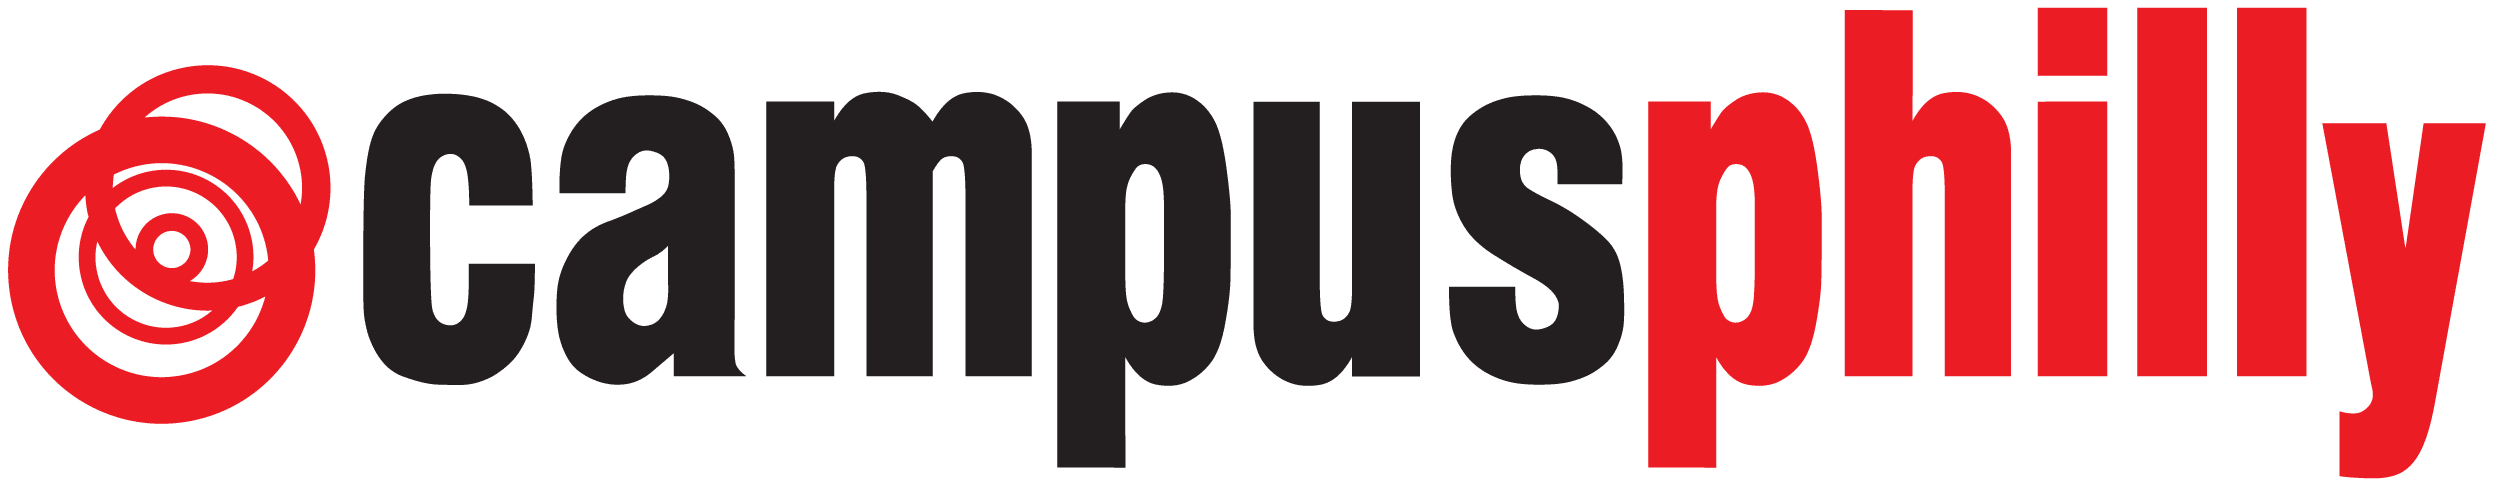 Campus-Philly-Logo.png